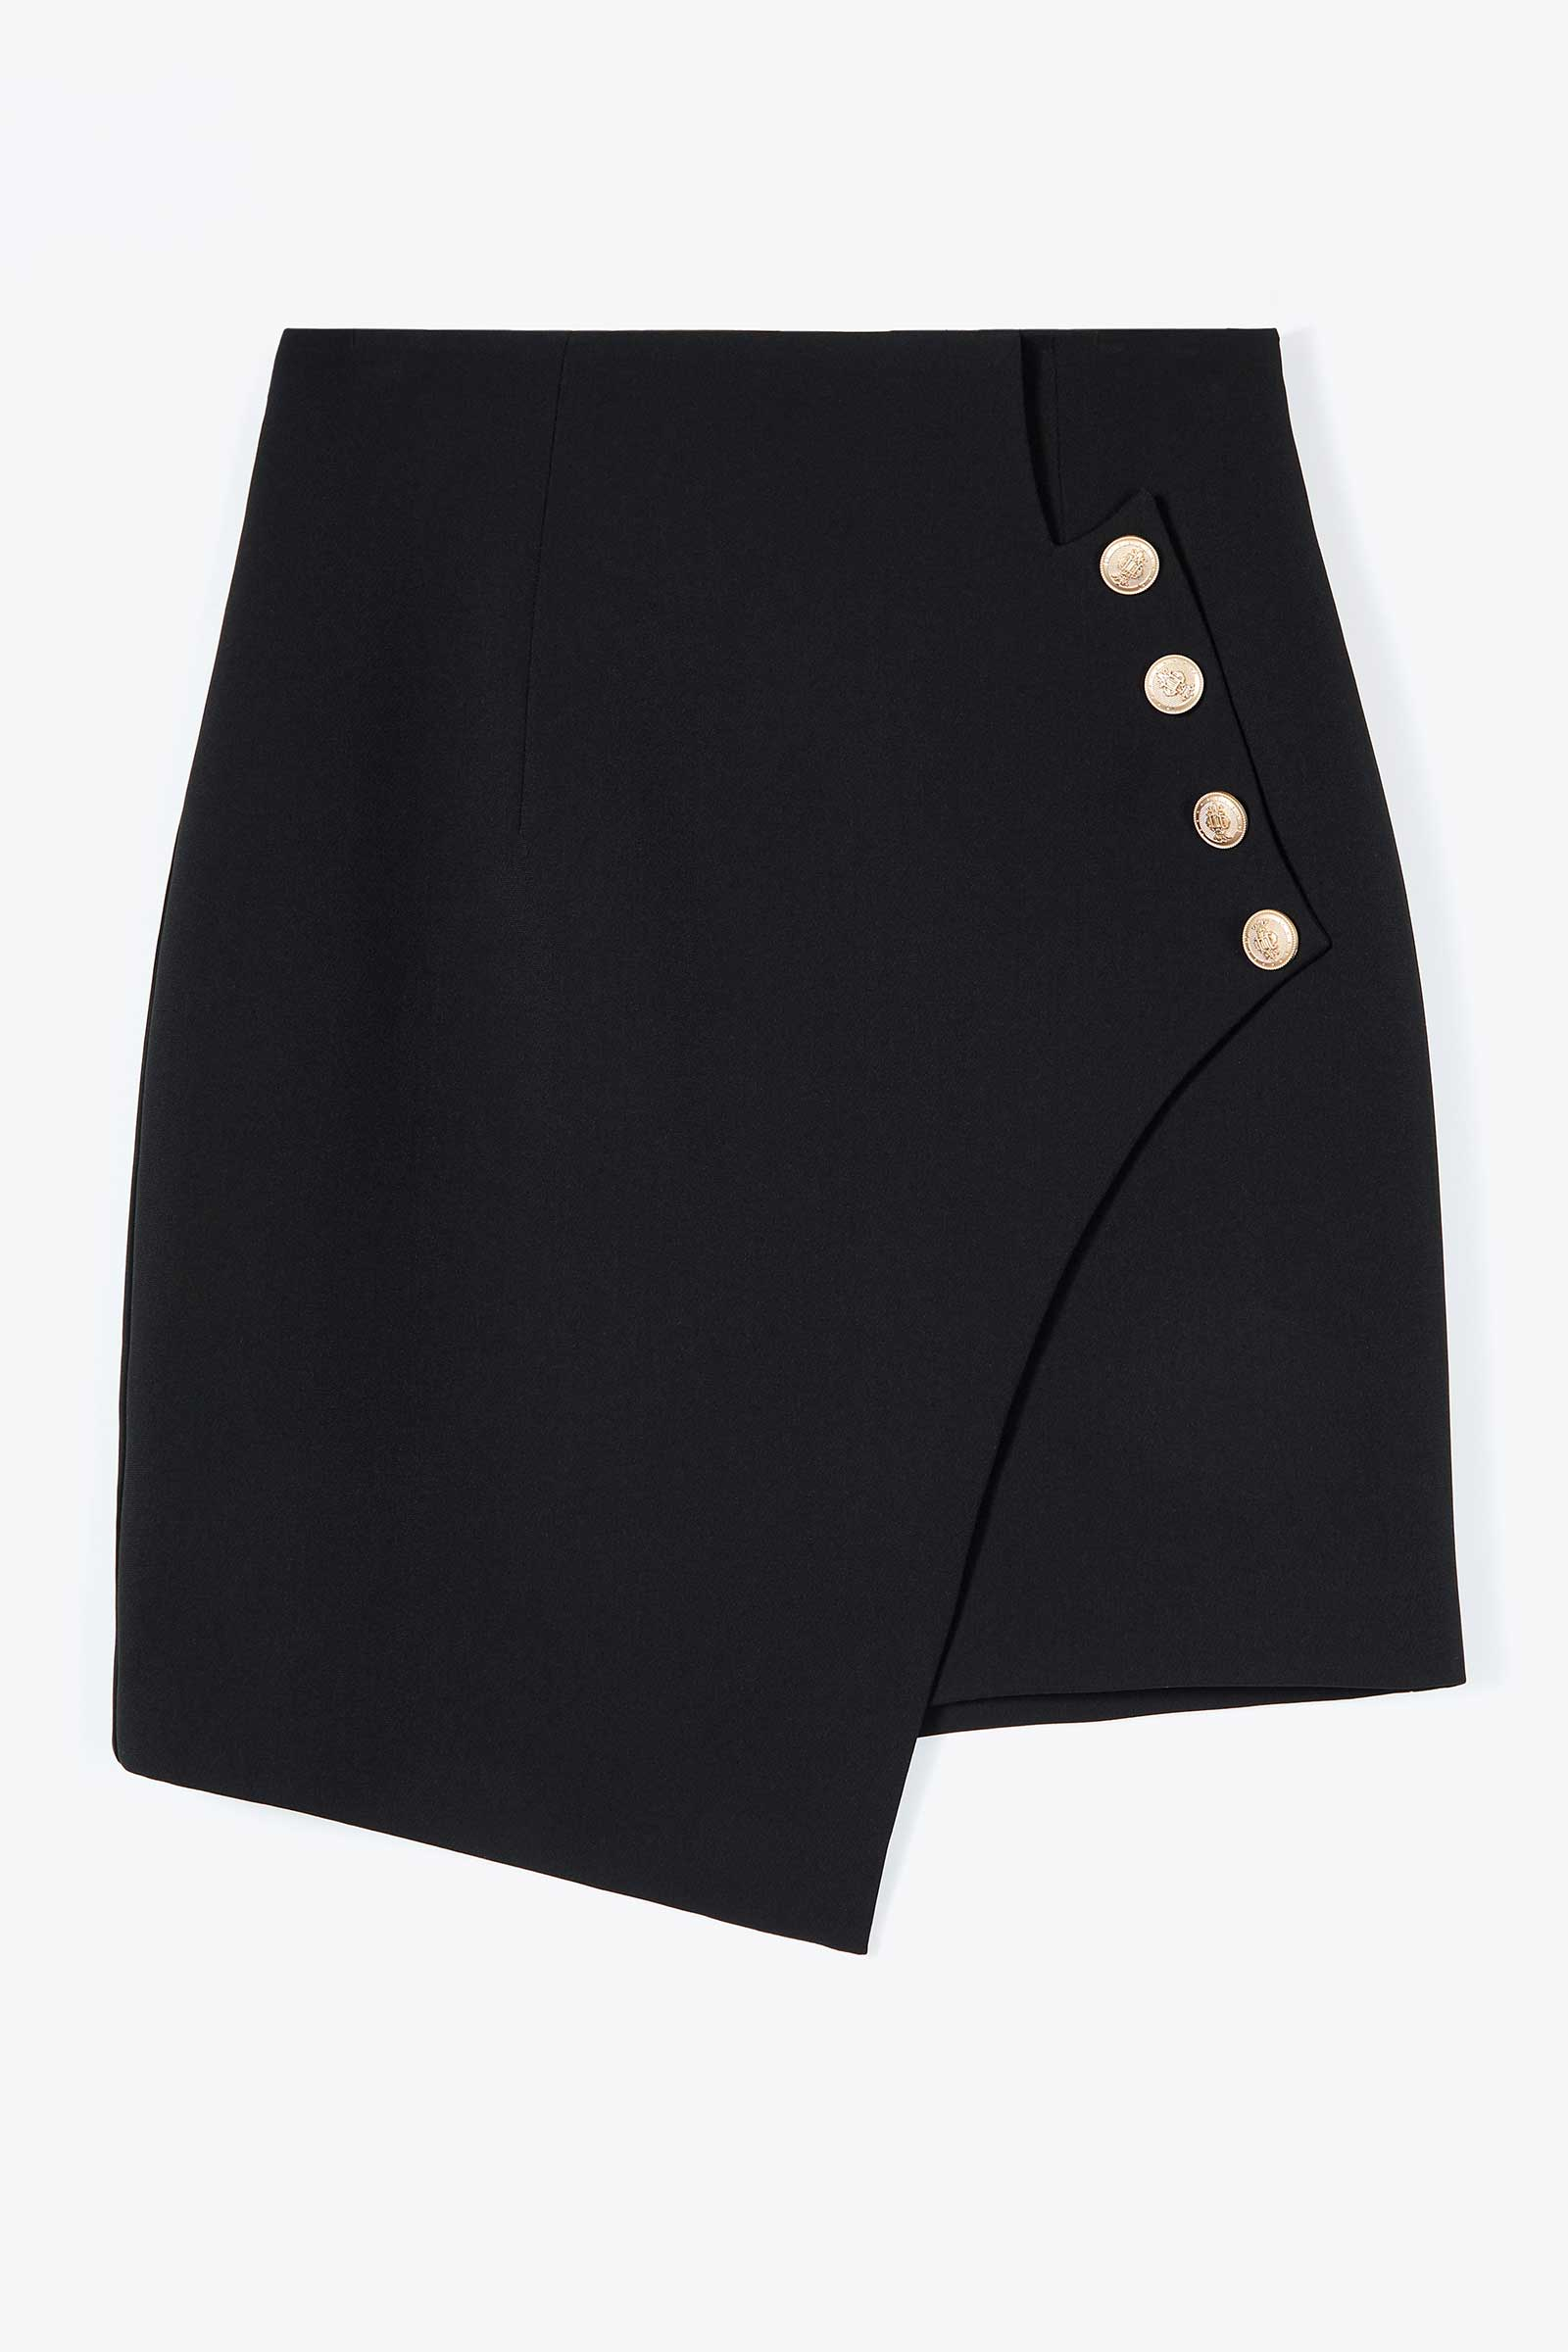 Valerie Black Asymmetrical Button Skirt